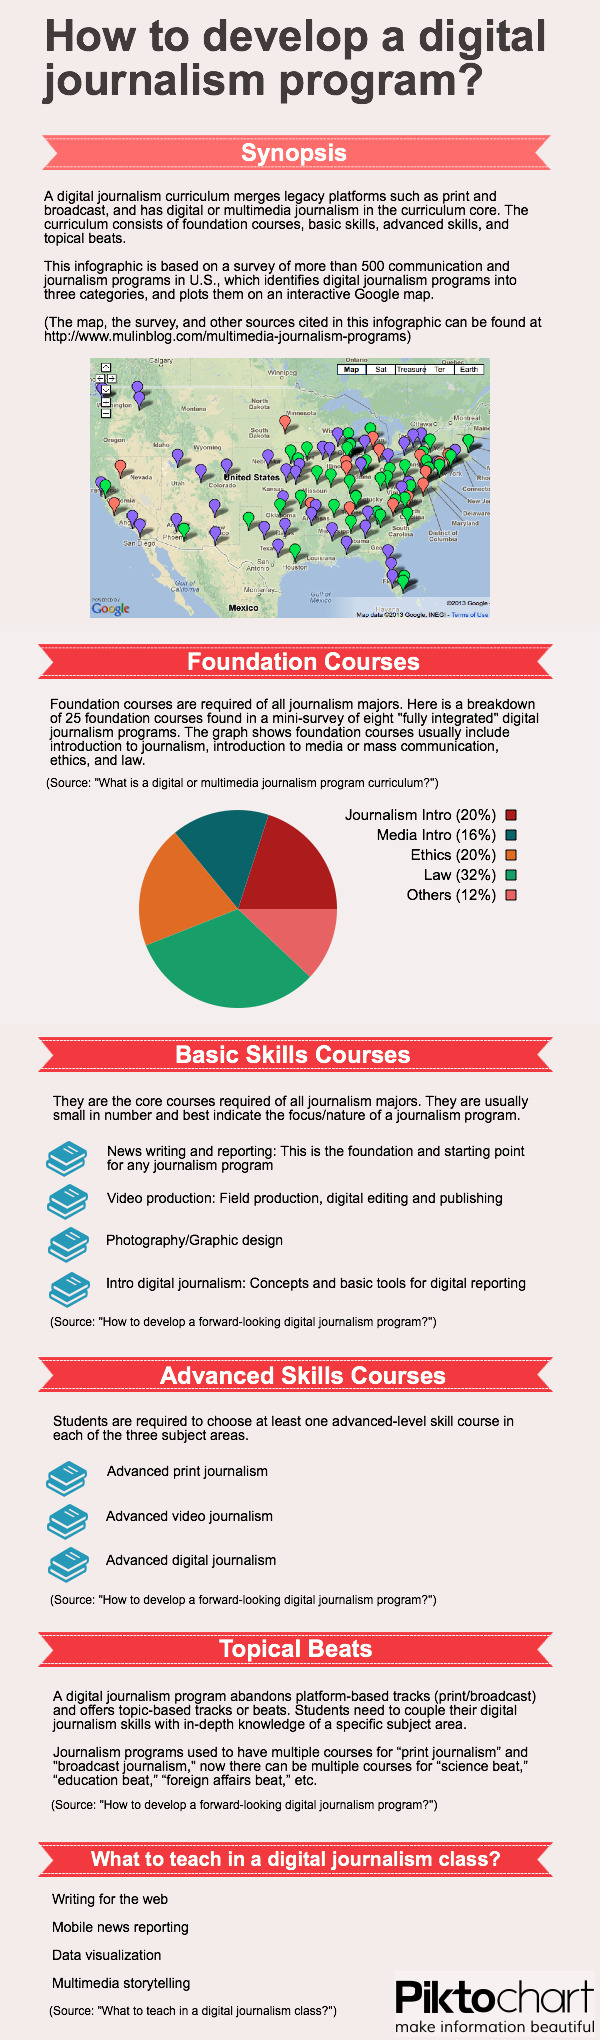 How to develop a digital journalism program